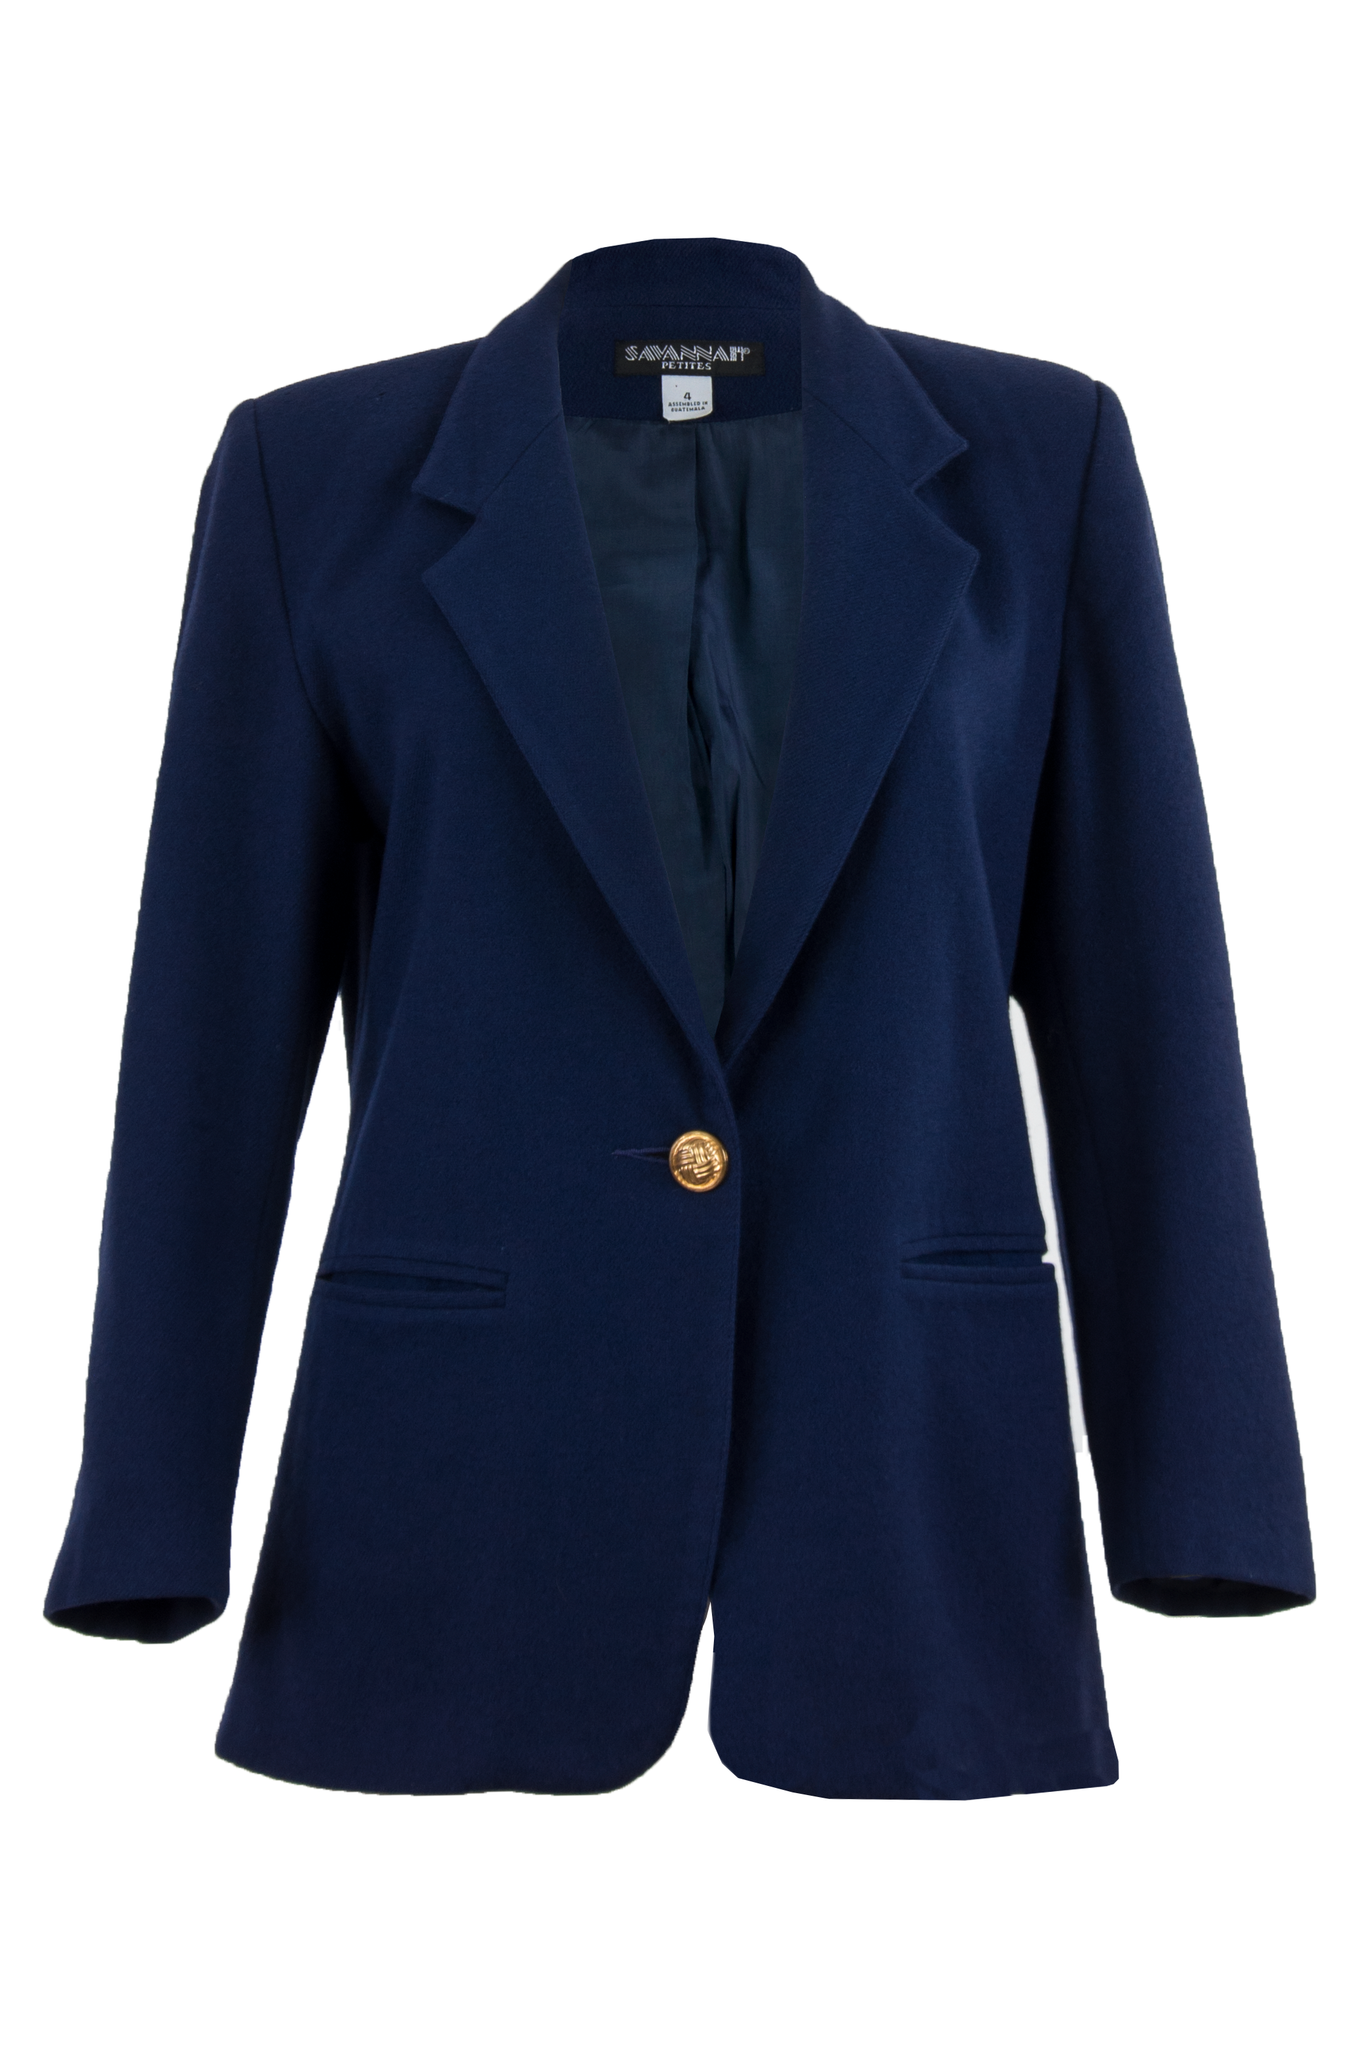 Vintage blazer in navy blue with gold-tone button